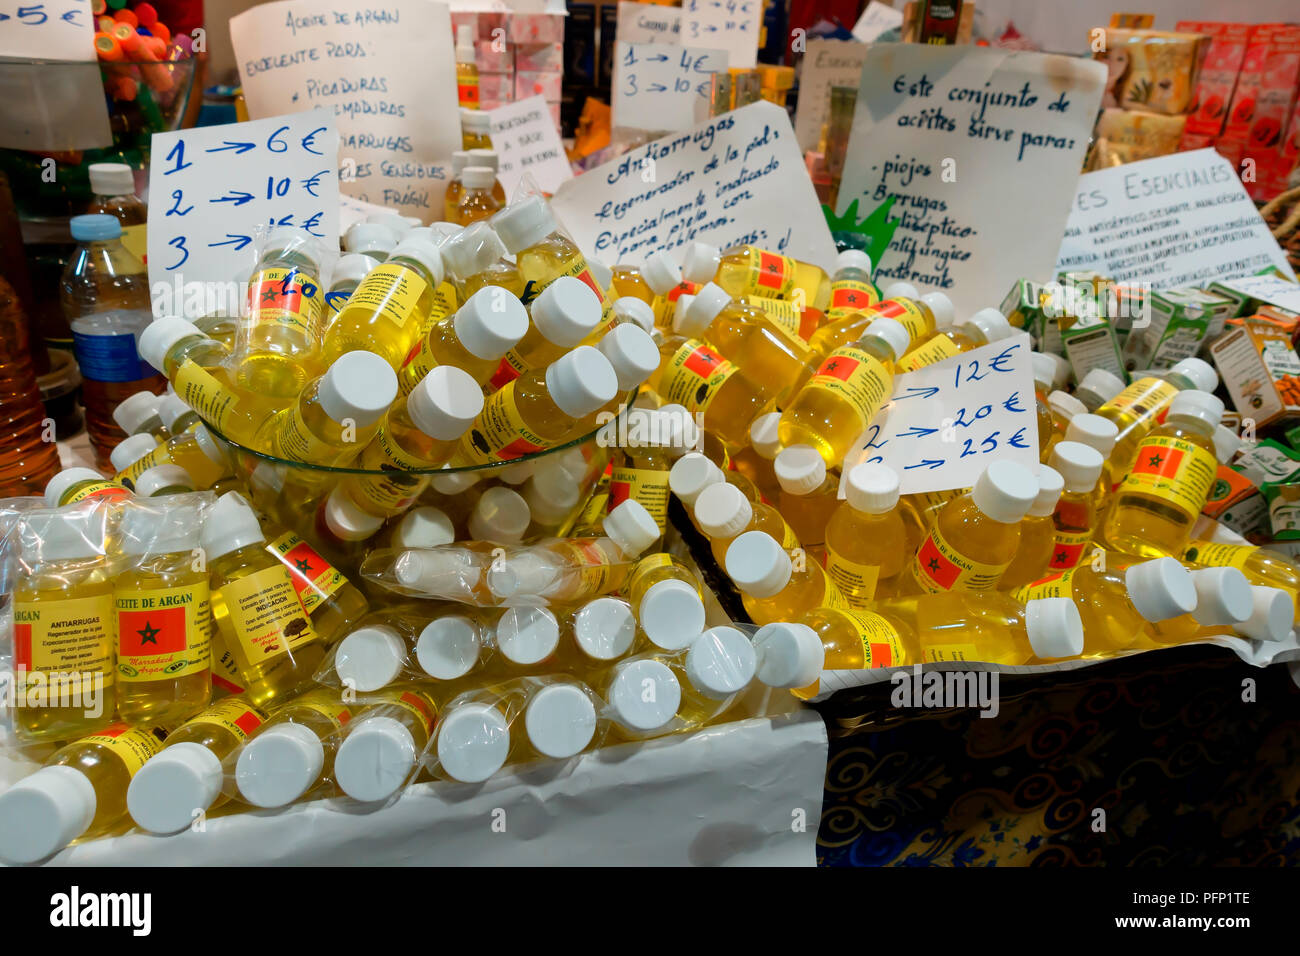 A stand selling Argan Oil at the Gijon Fair 2018. August 16, 2018. Spain. Antioxidant and healing product, and more. - Stock Image